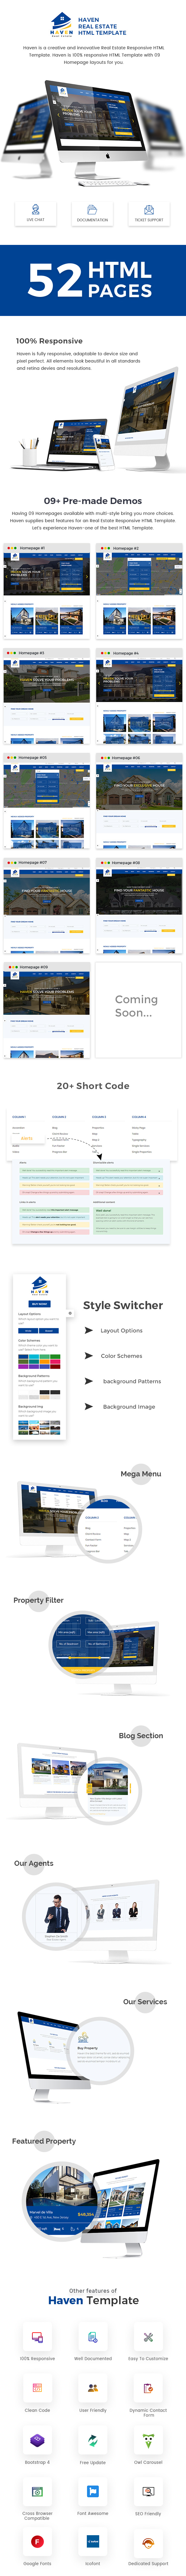 Haven - Real Estate Responsive HTML Template - 1